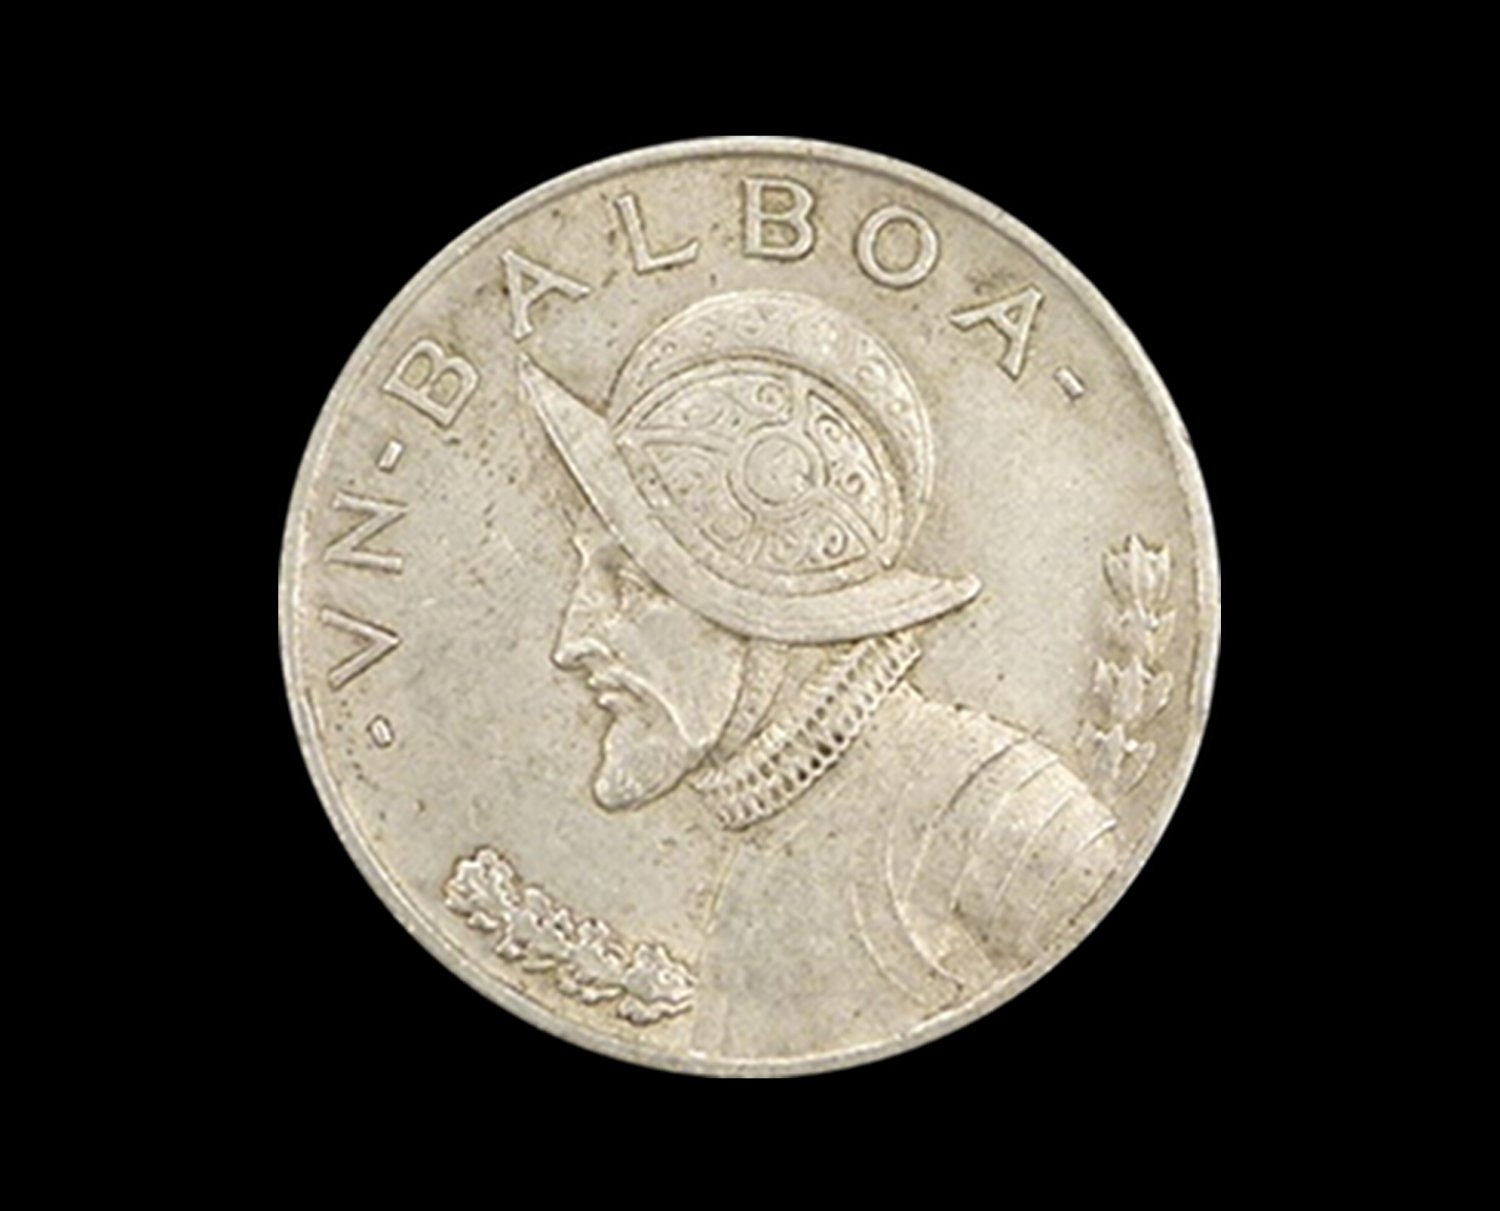 1947 Silver Panamanian Balboa, .900 Fine, .7735 Troy Ounce Actual Silver Weight